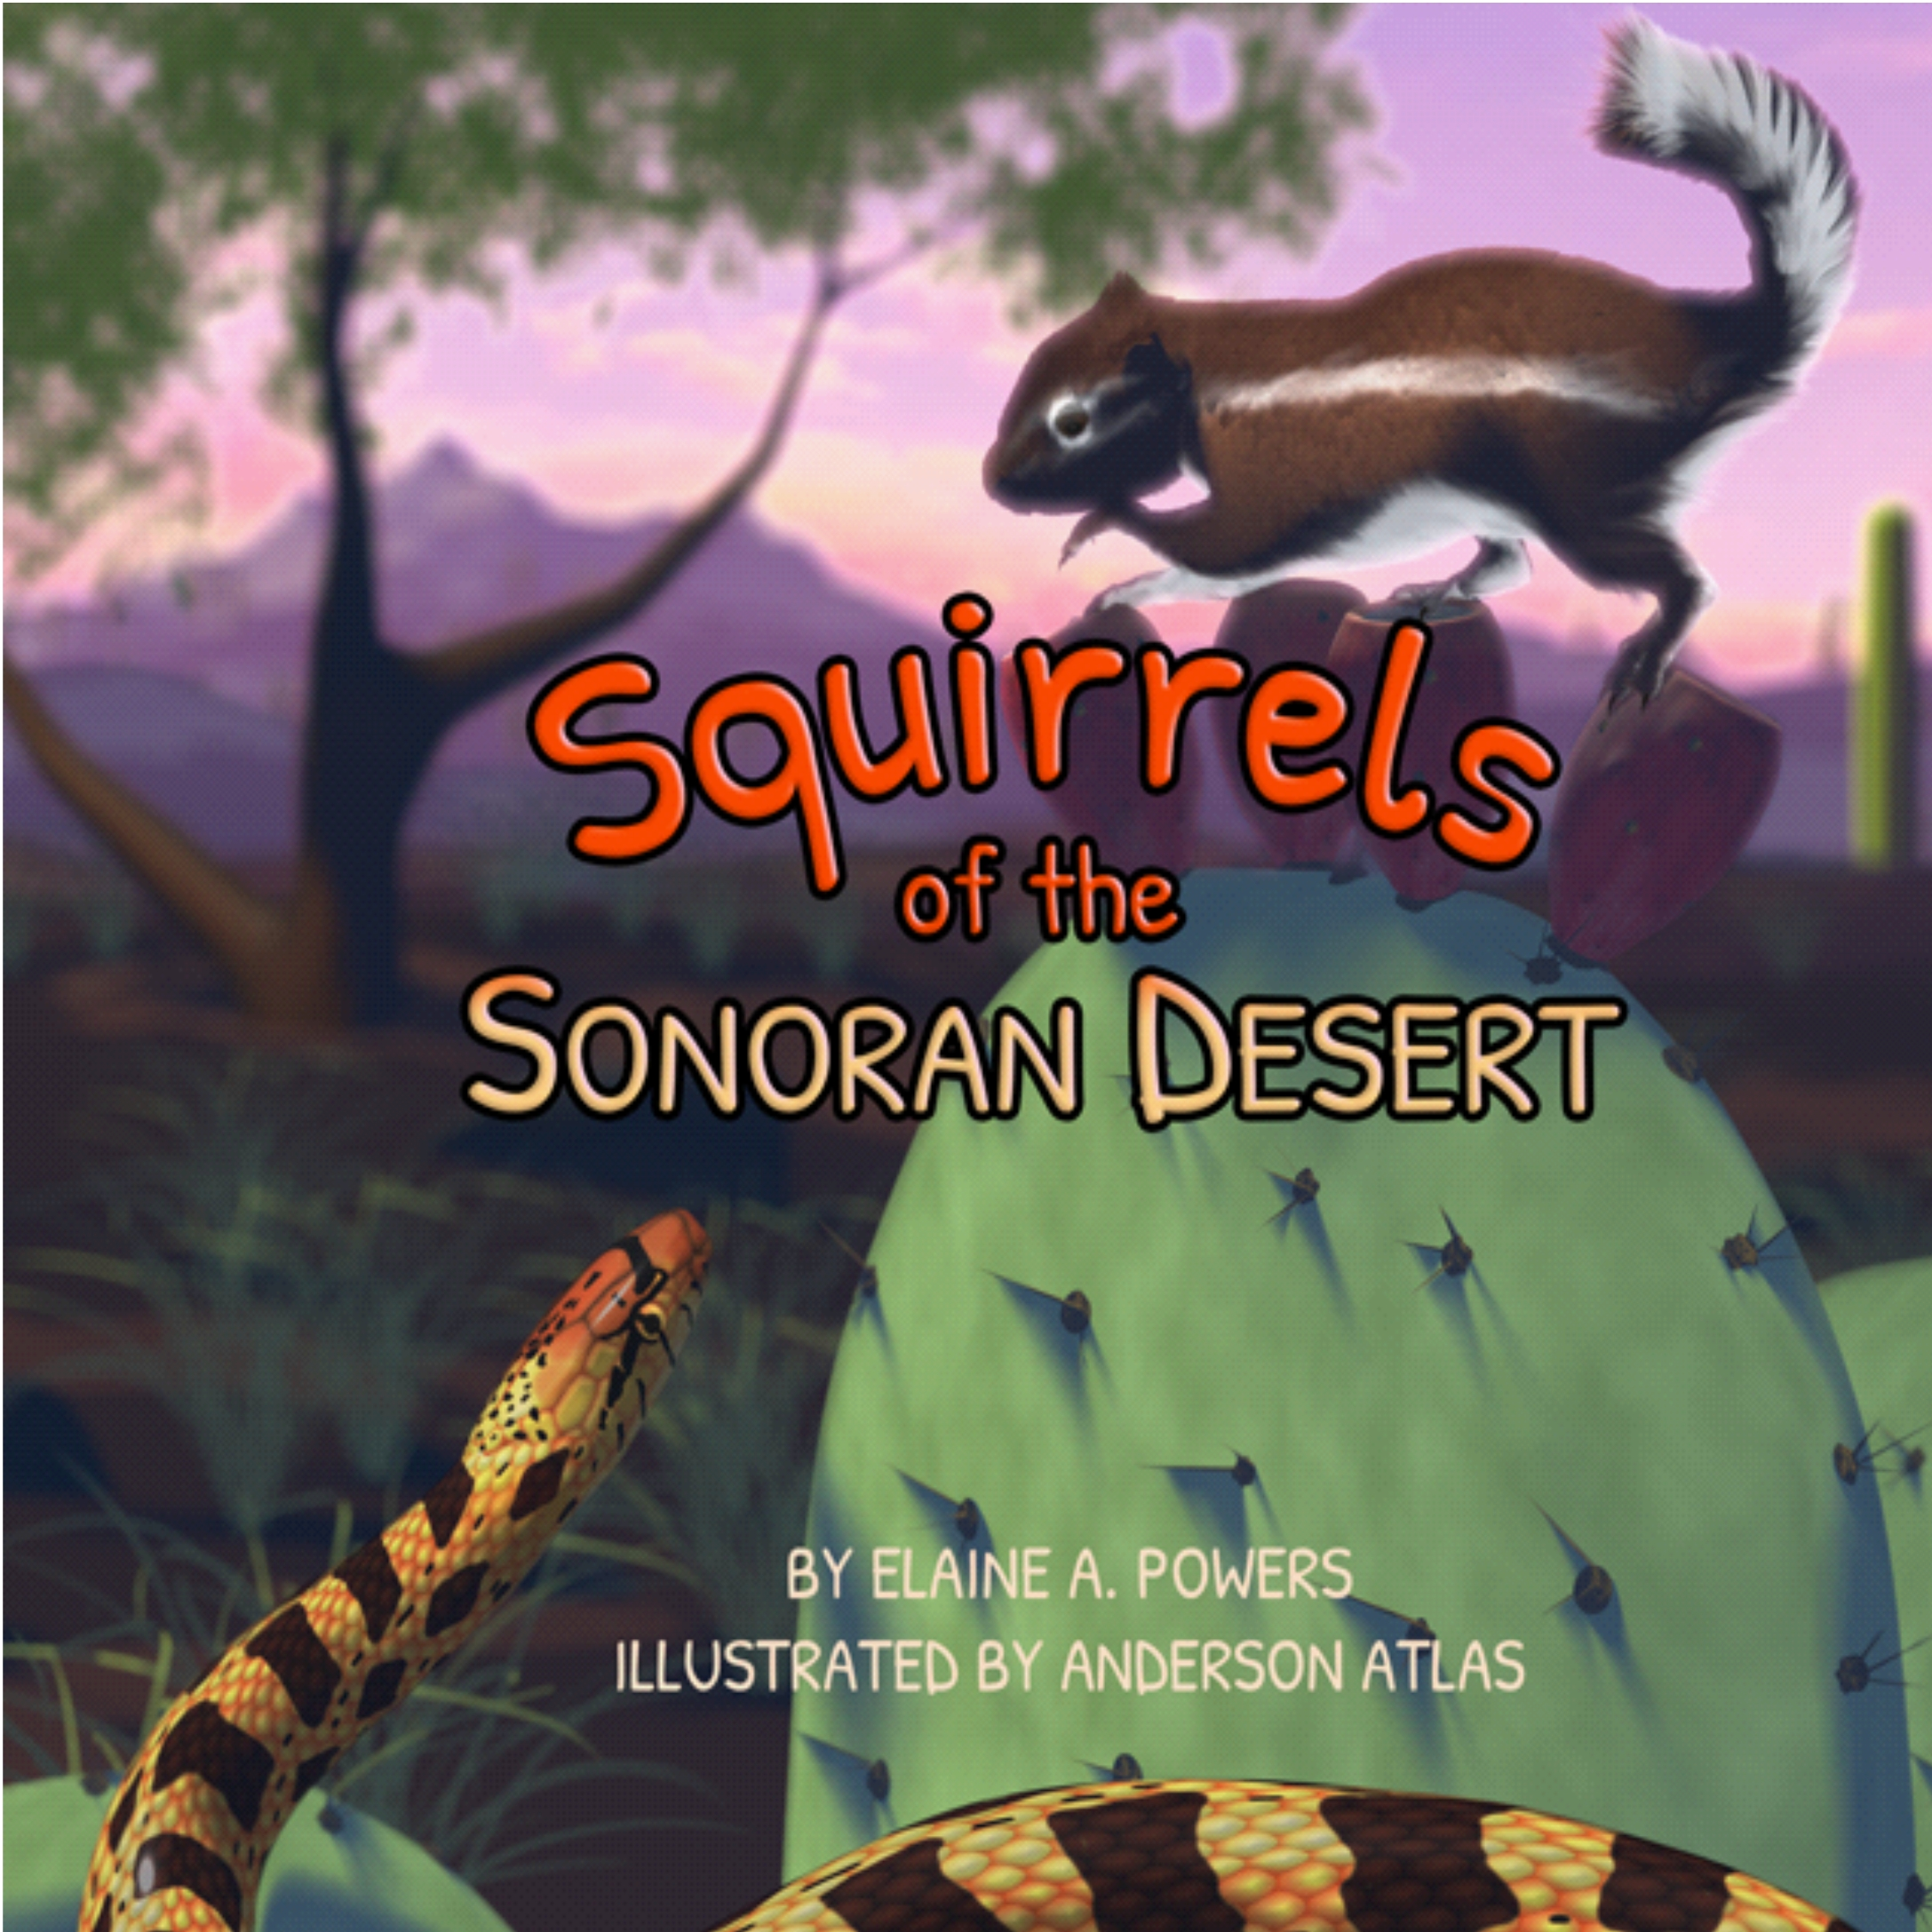 image of book cover Squirrels of the Sonoran Desert